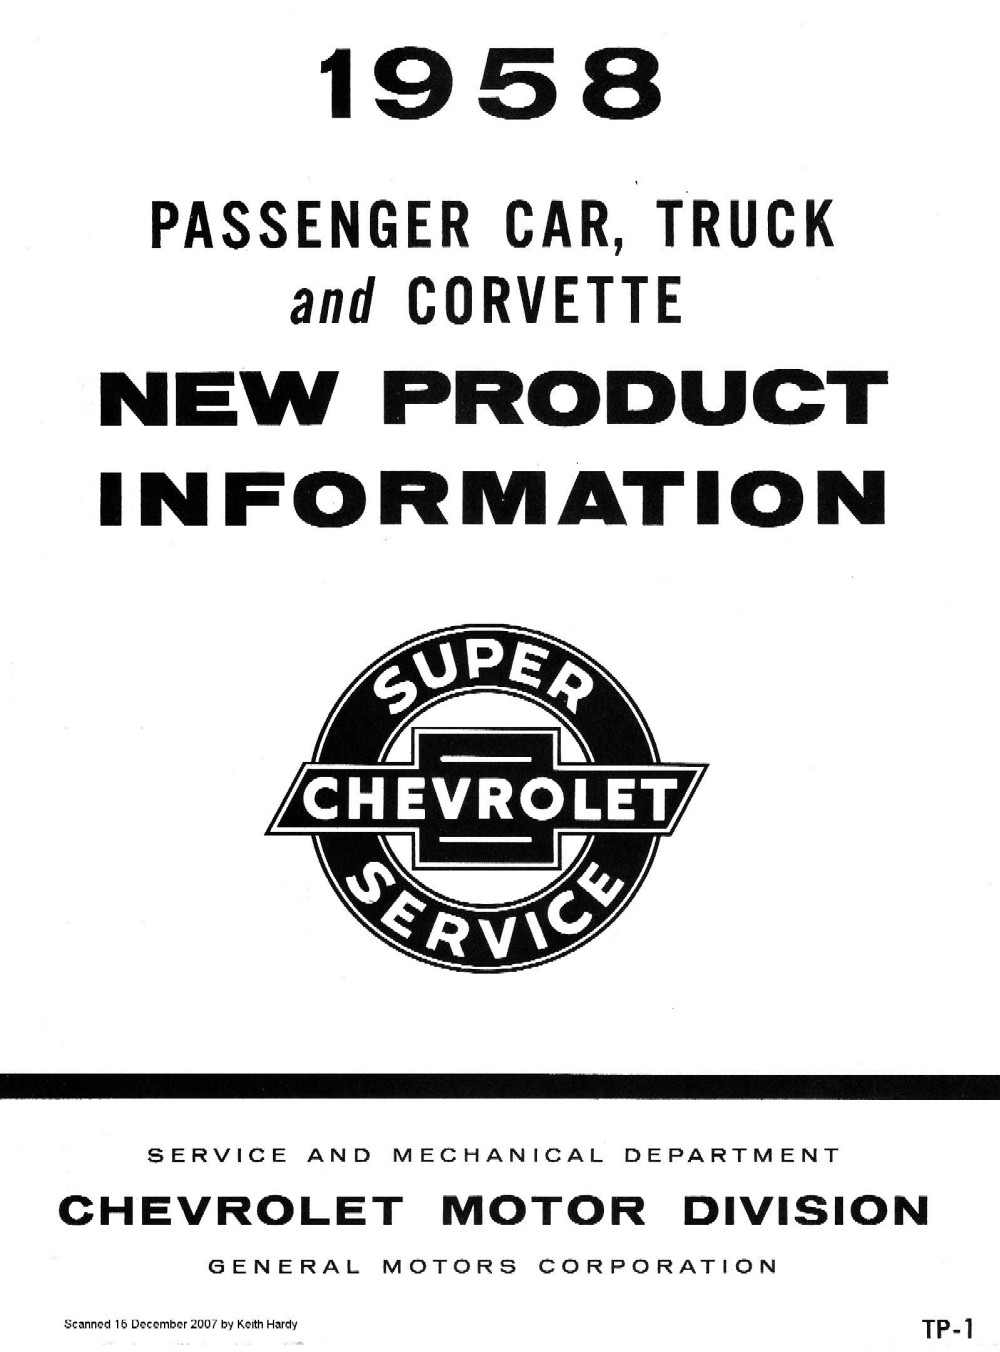 1958 Passenger Car, Truck and Corvette New Product Information